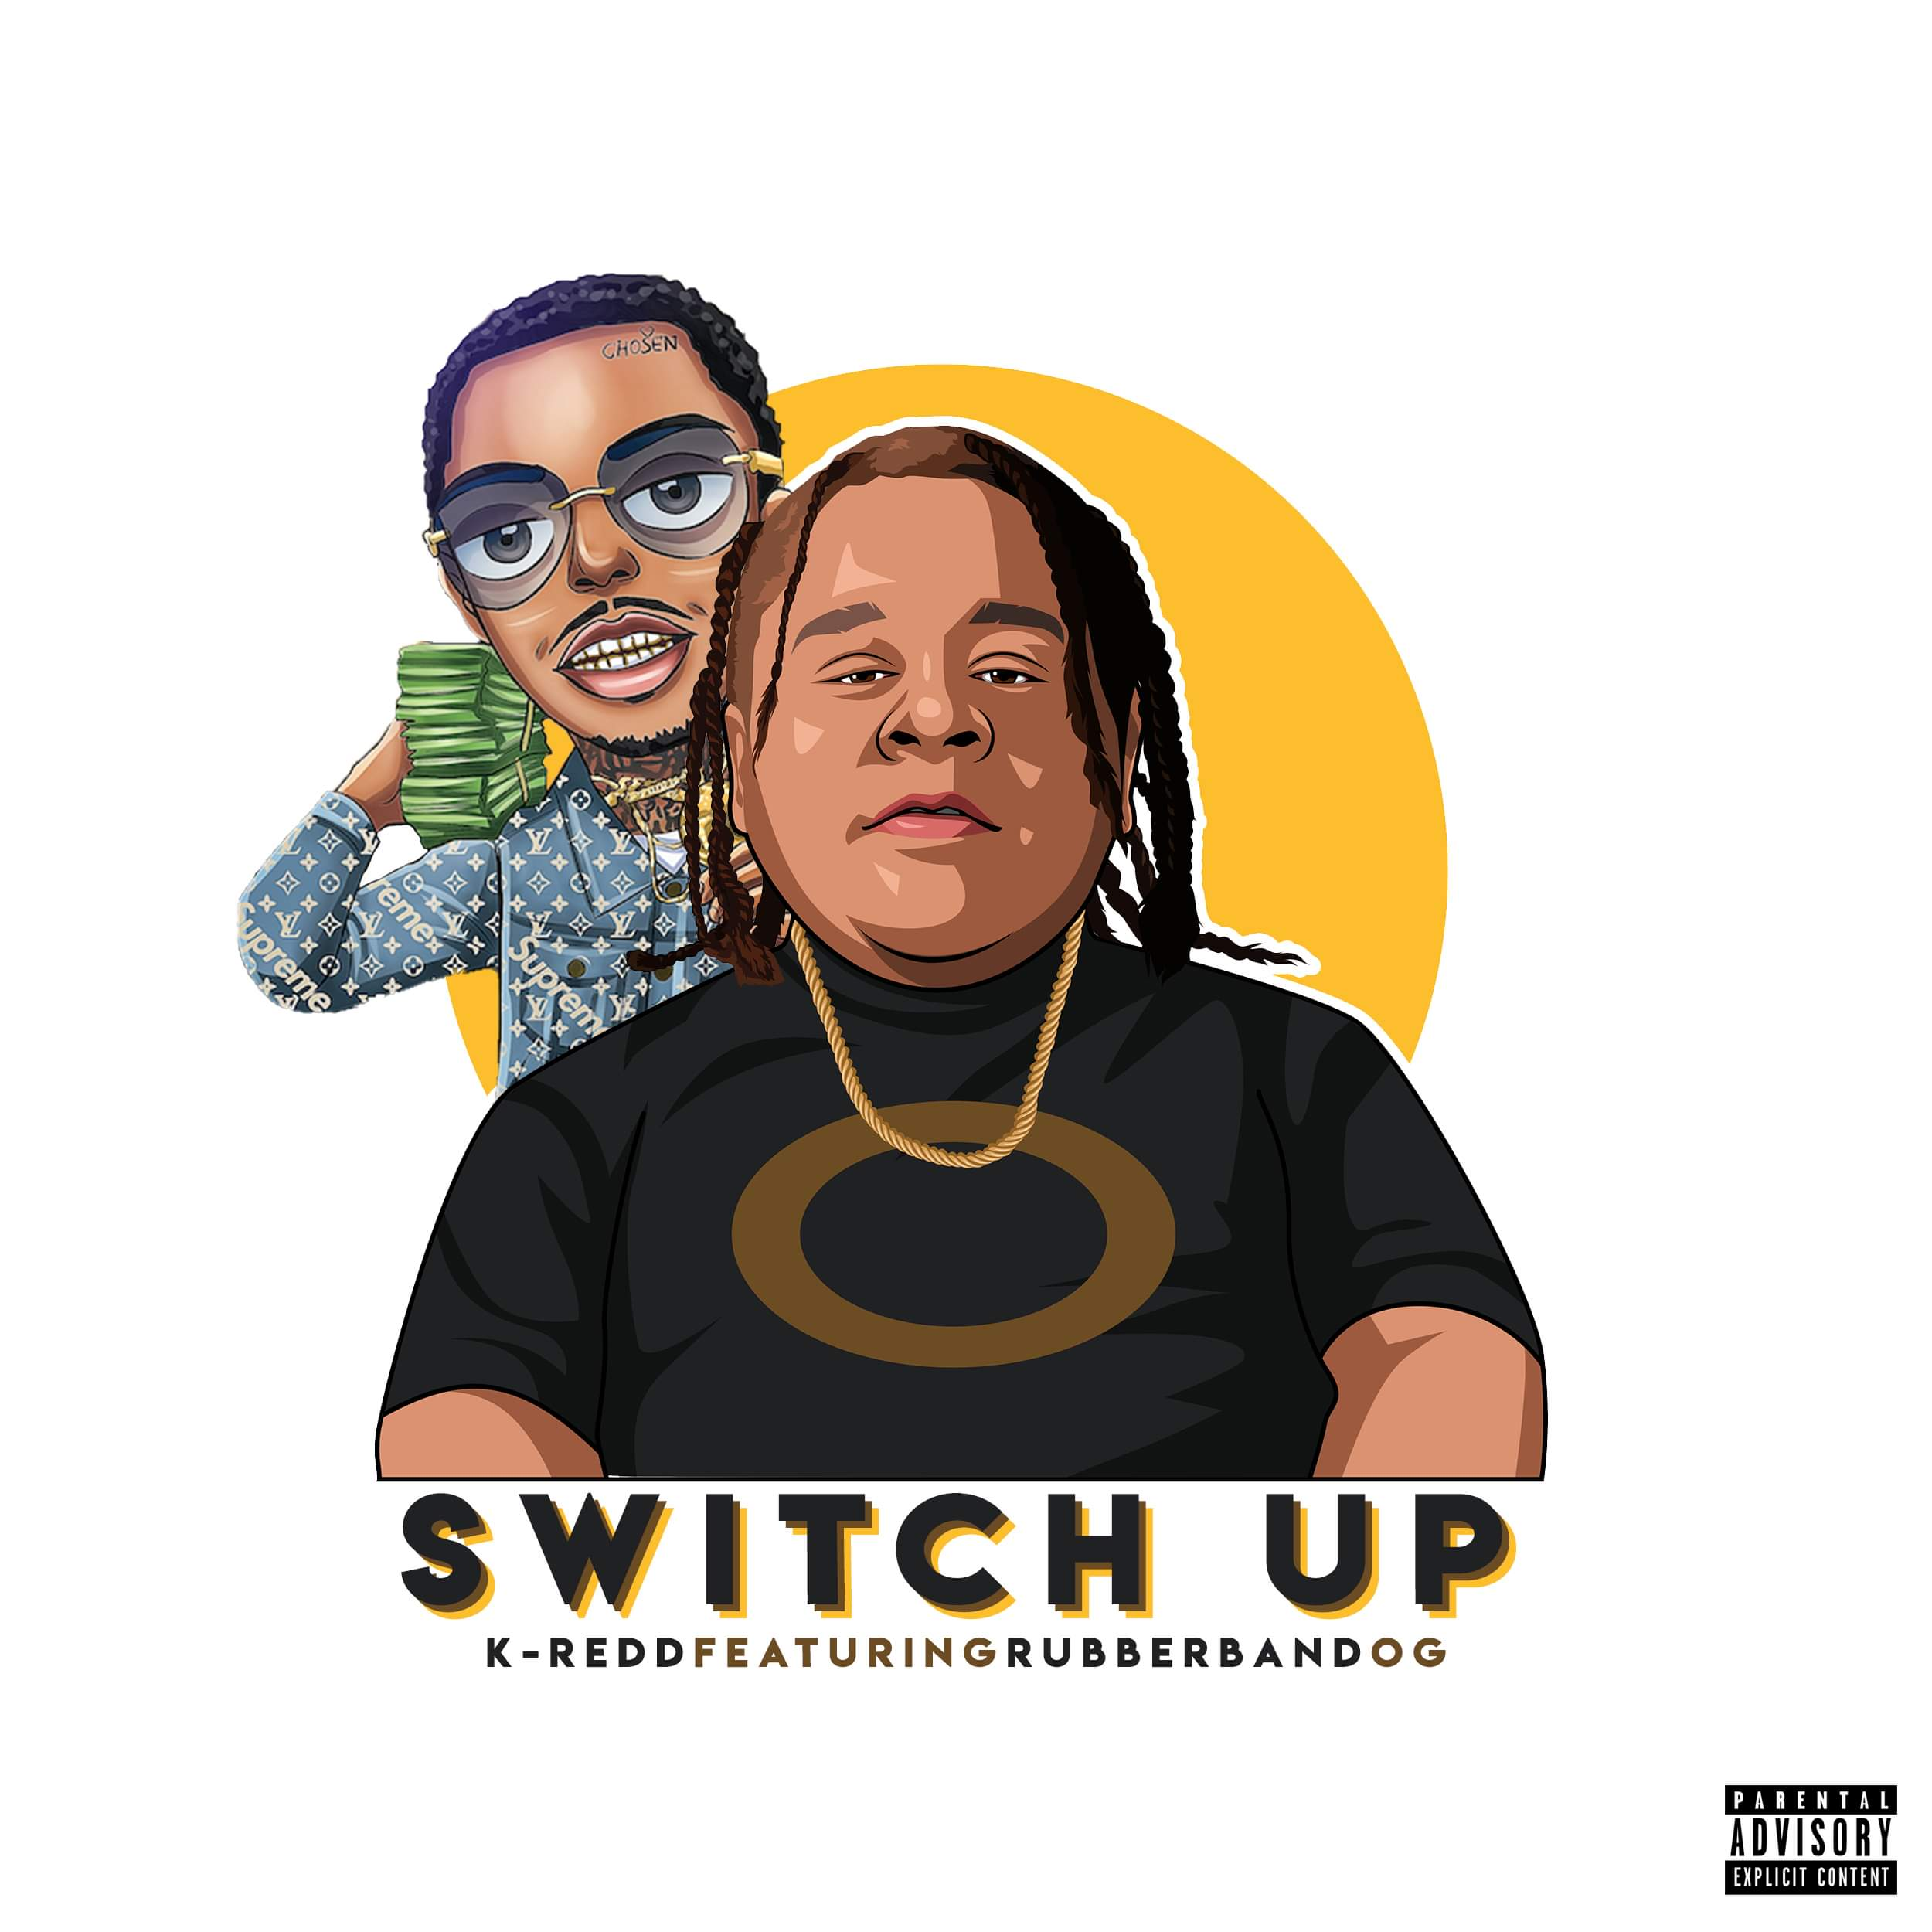 Art for Switch Up by K-Redd